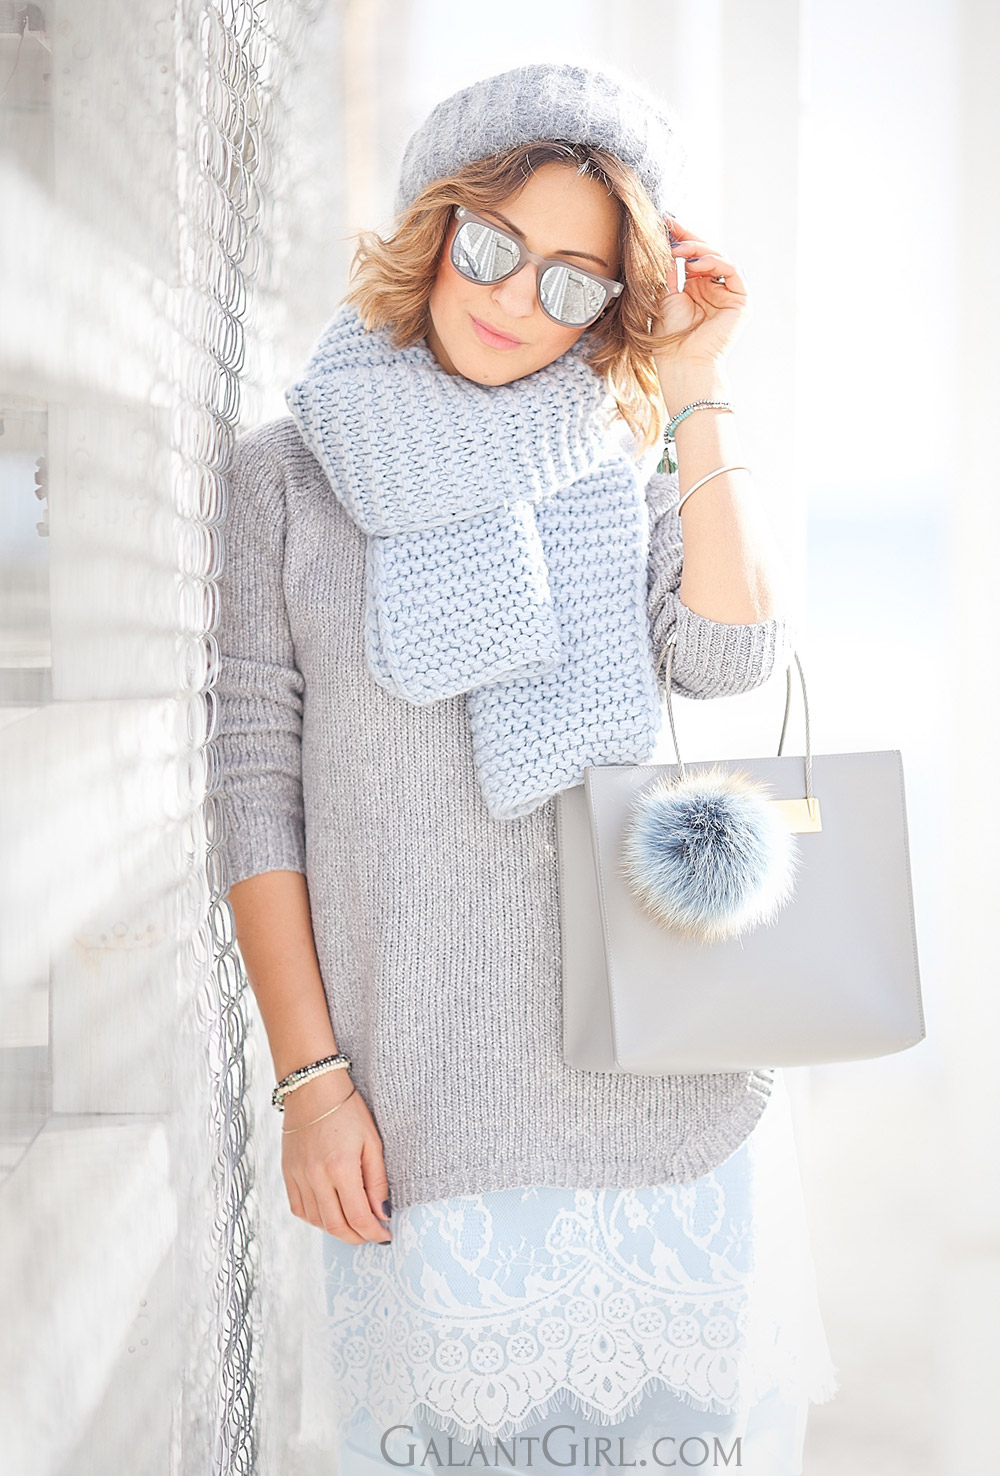 ellena+galant+girl+winter+outfit